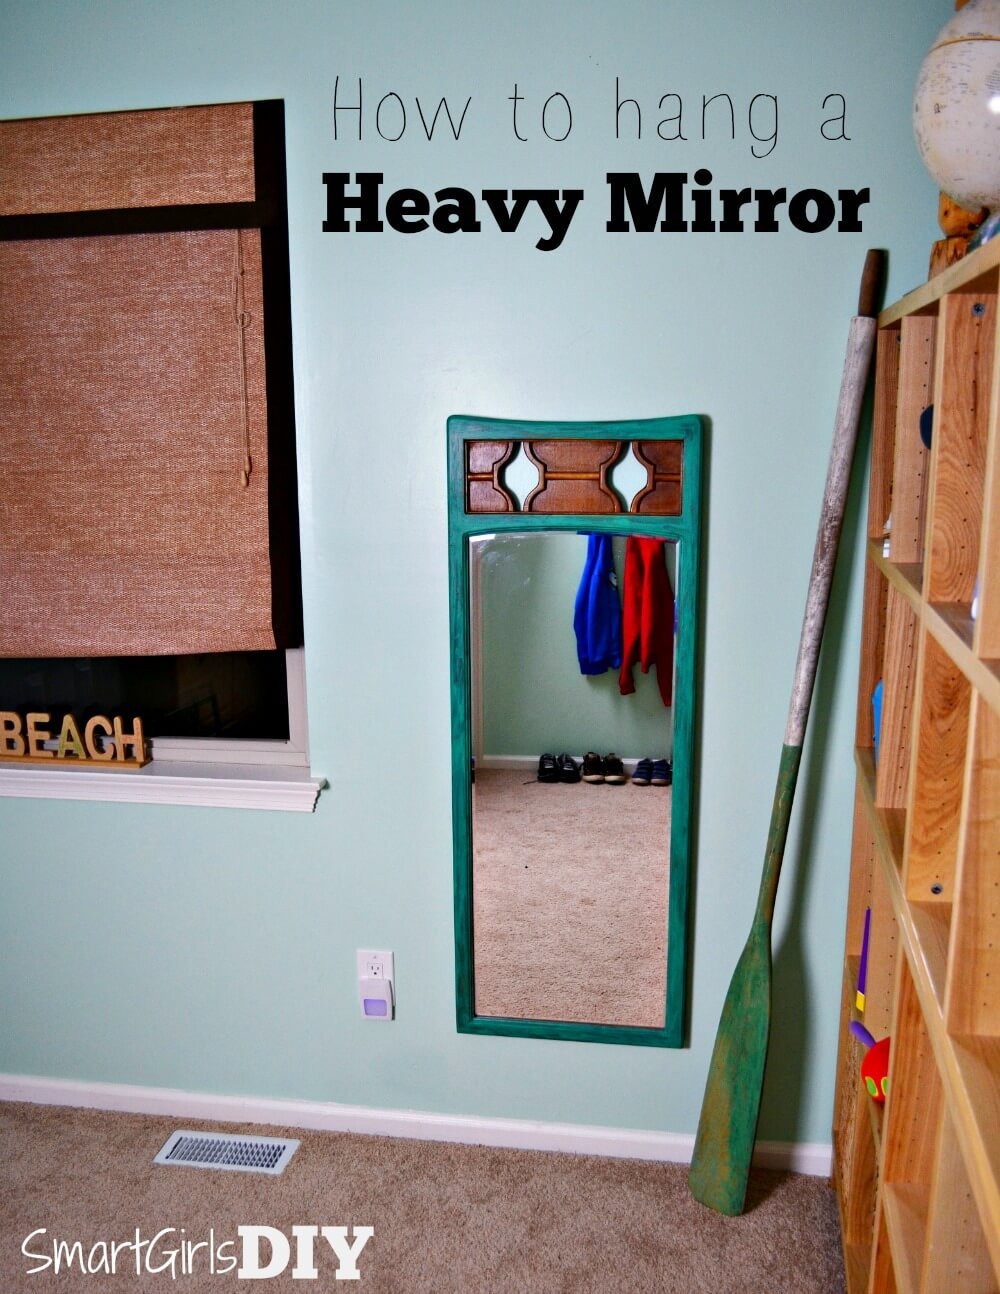 How to hang a heavy mirror - DIY